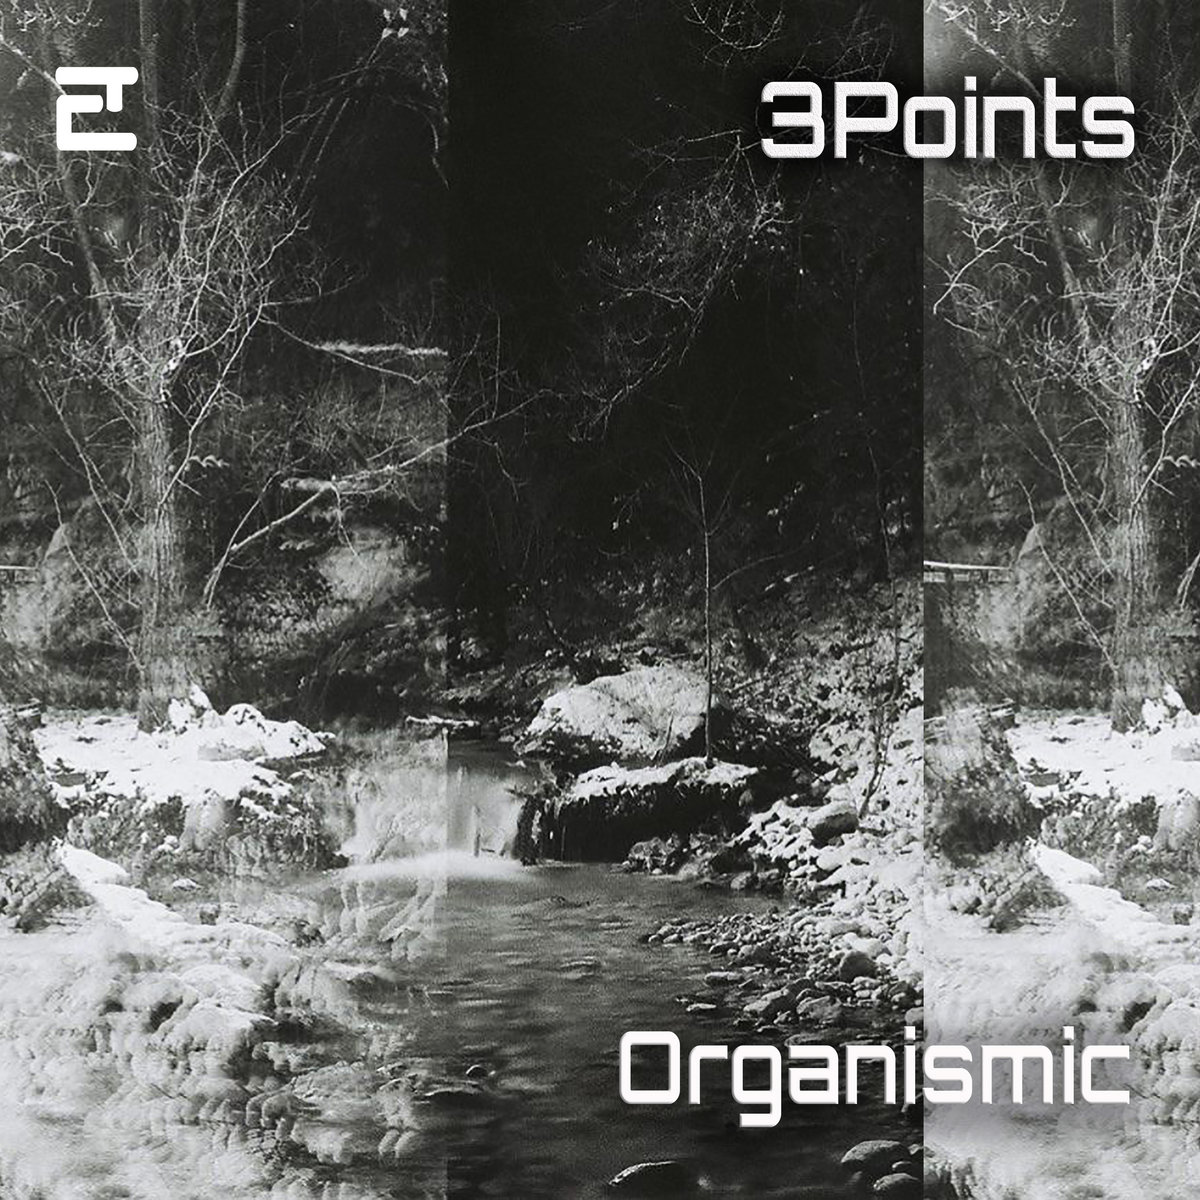 E93 3points: Organismic